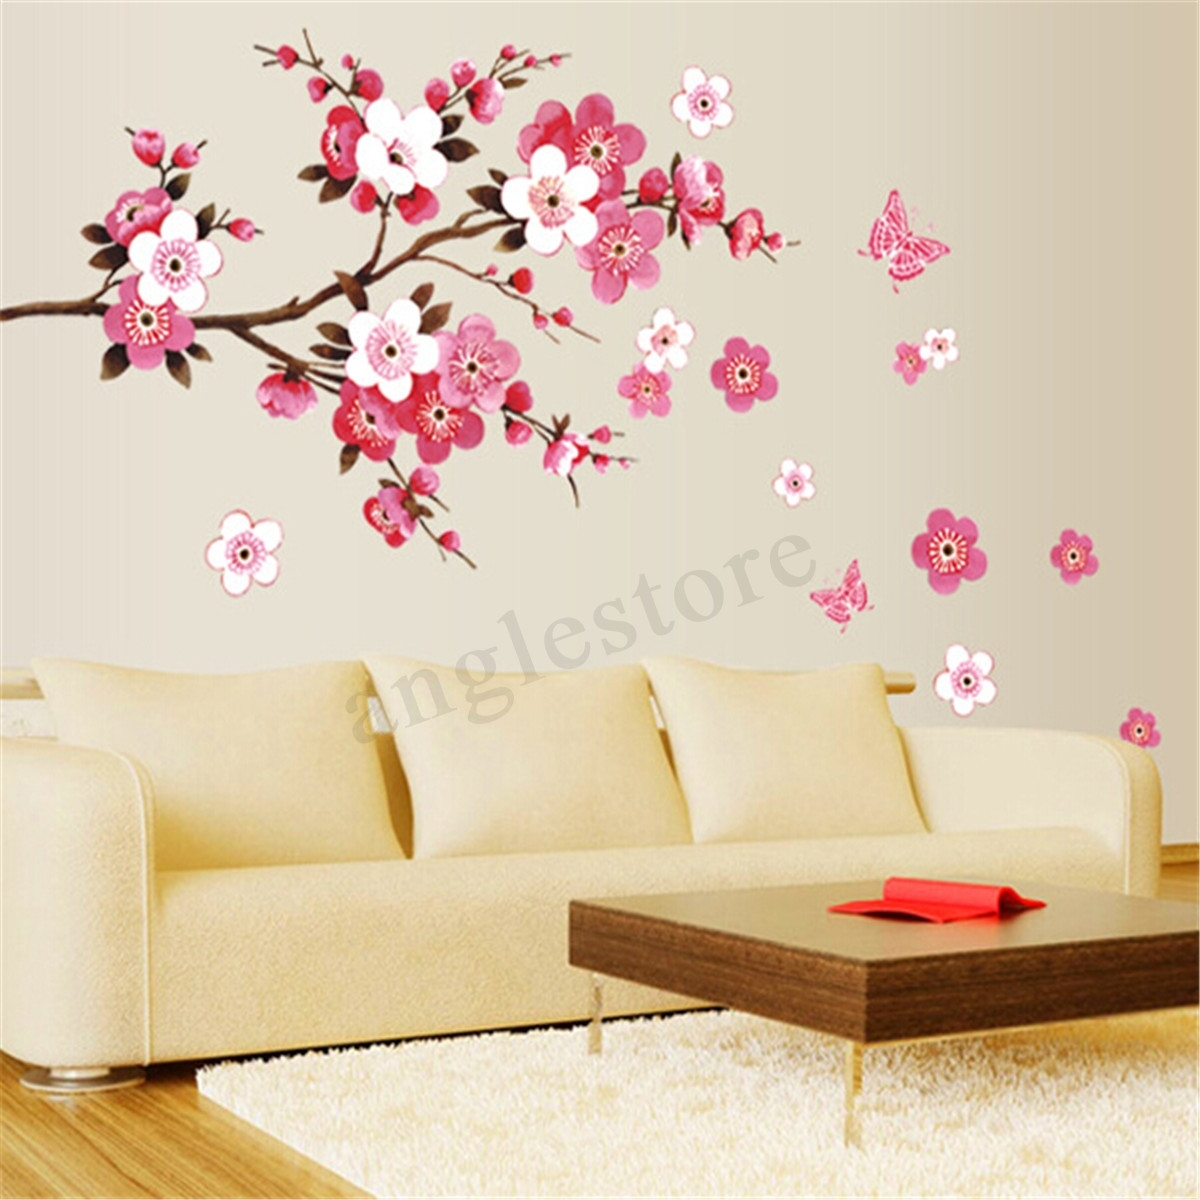 Large Sakura Flower Removable Wall Sticker Paper Mural Art Decal Intended For Most Up To Date Wall Sticker Art (Gallery 7 of 15)